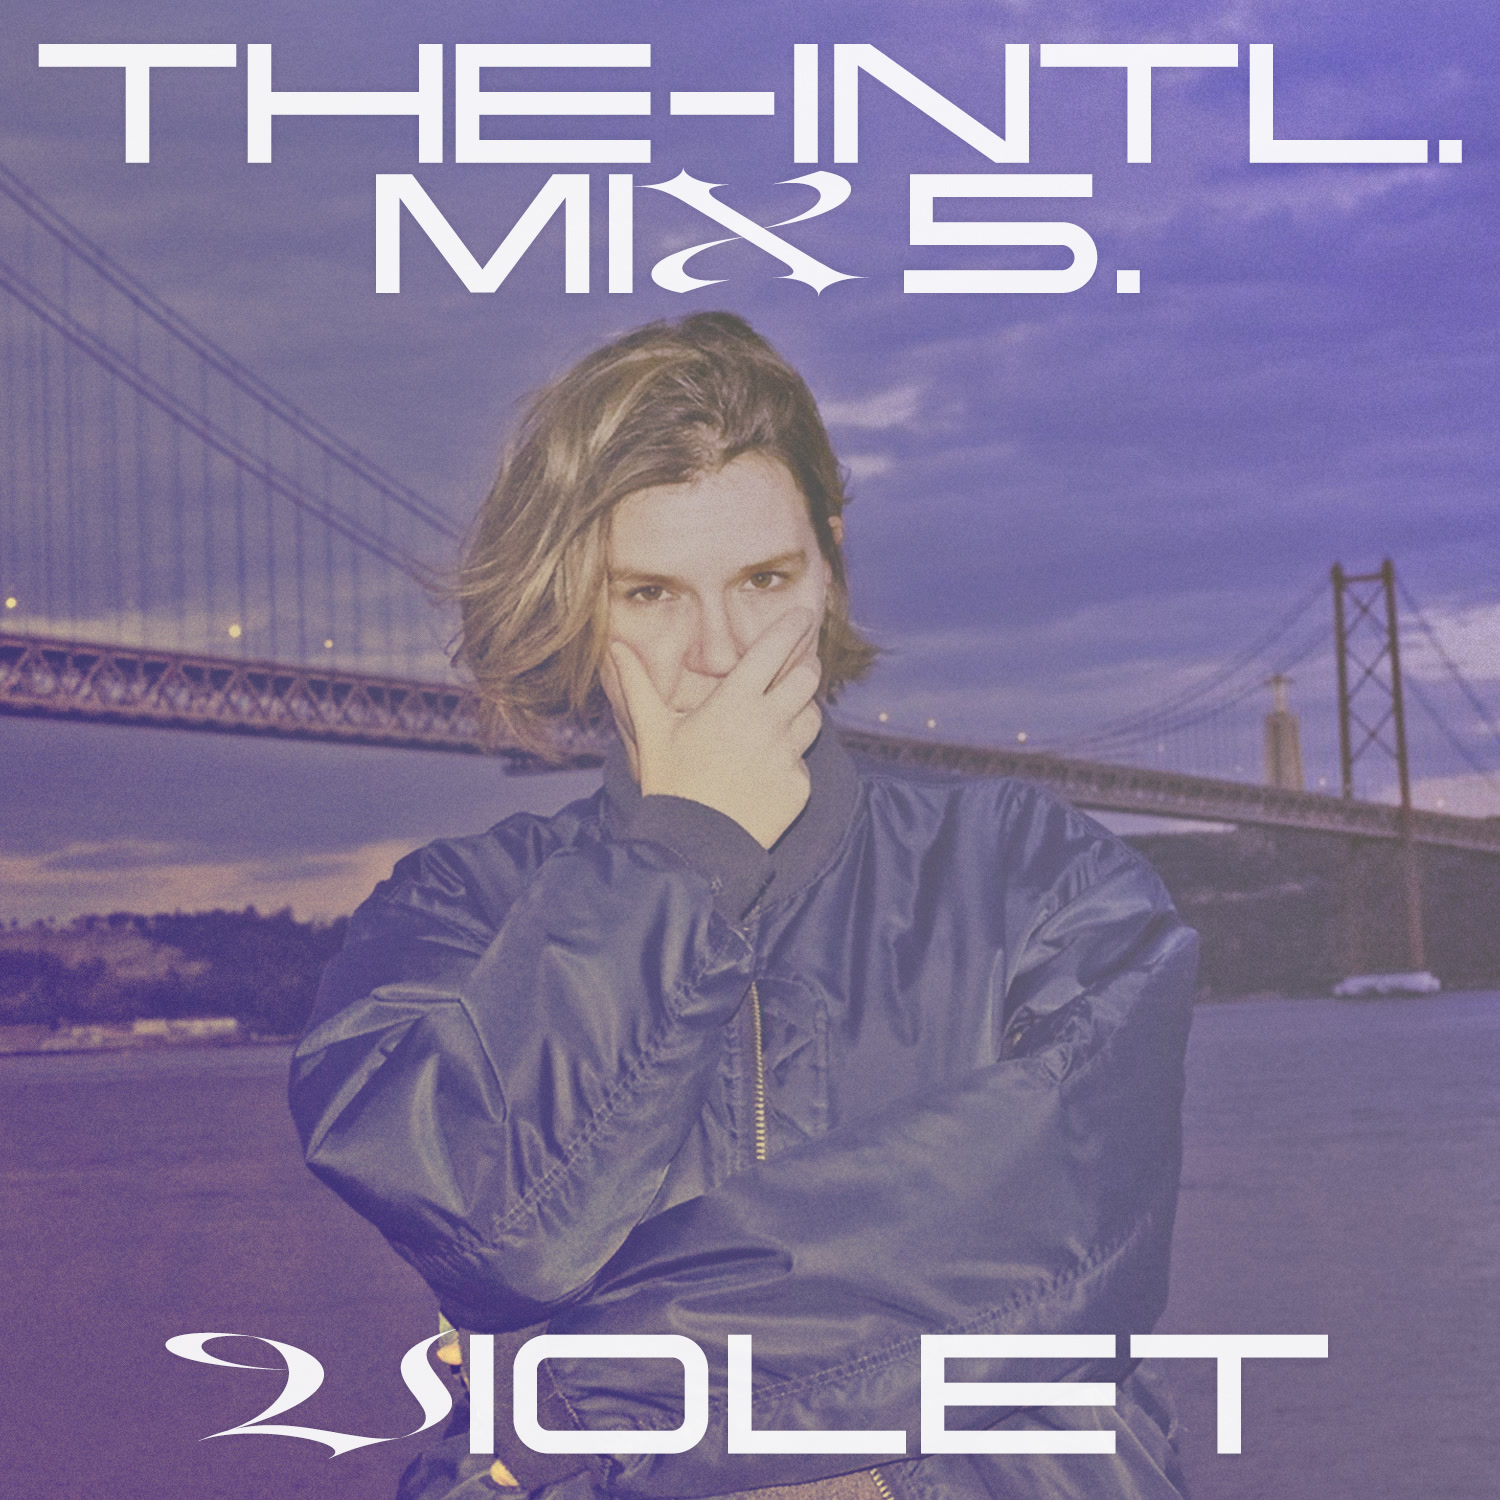 THE-INTL.MIX 5. VIOLET